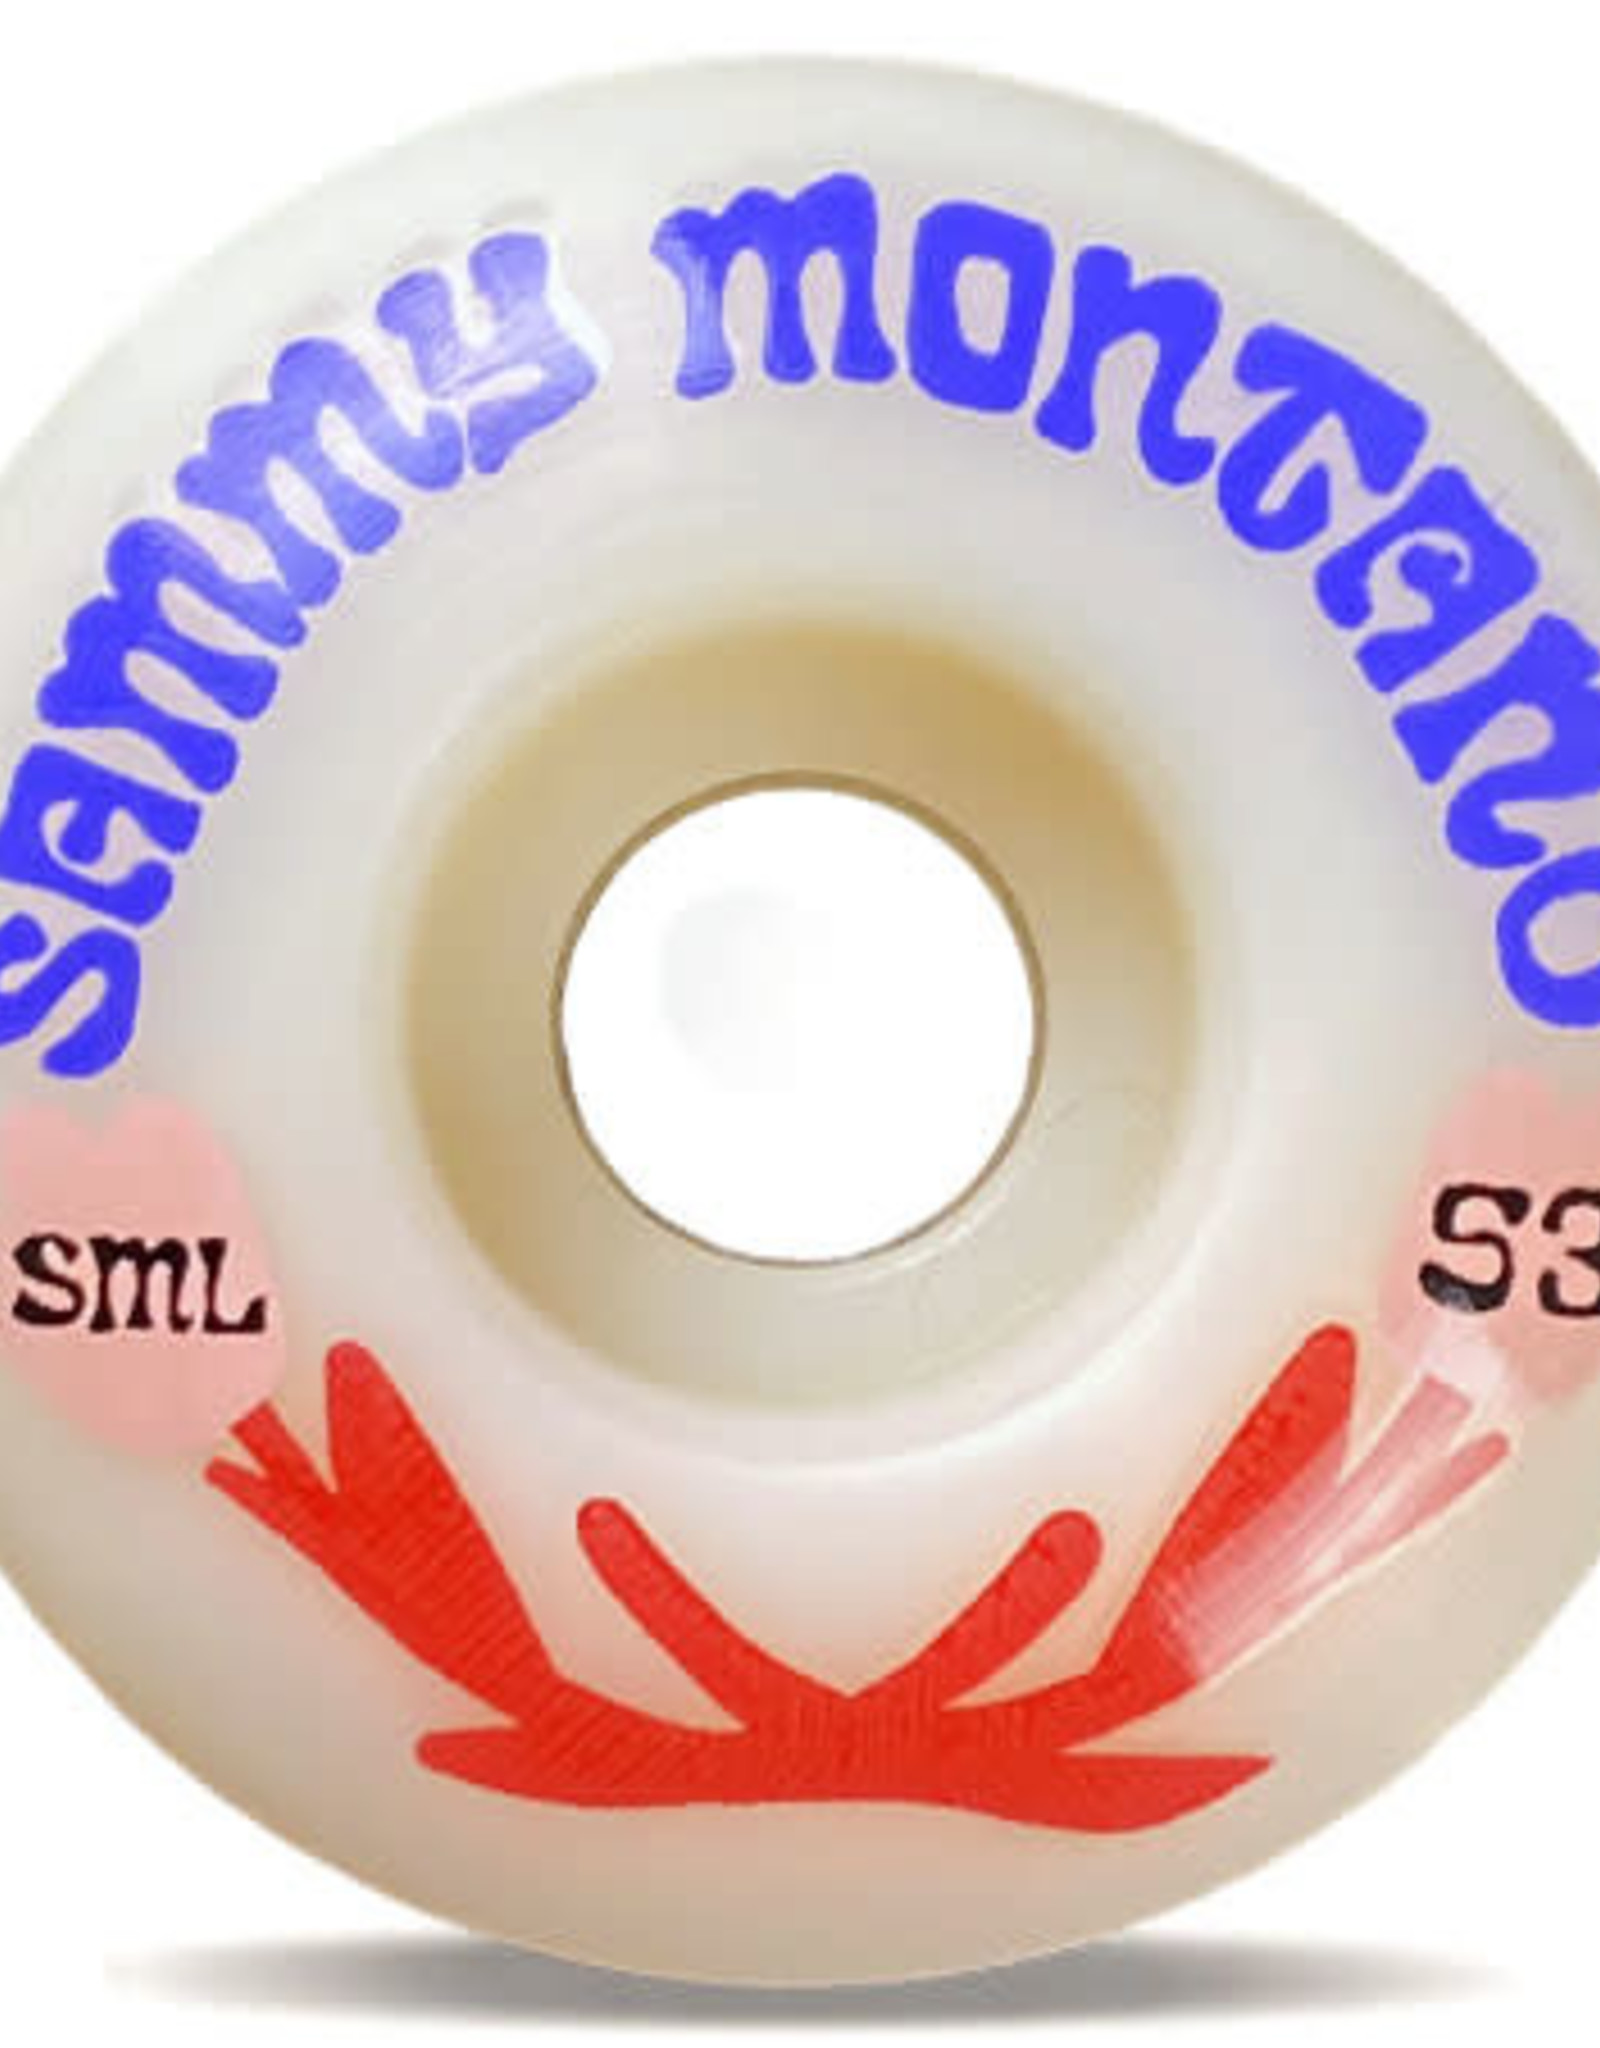 SML SML 53MM SAMMY MONTANO 53MM OG WIDE 99A THE LOVE SERIES WHEELS